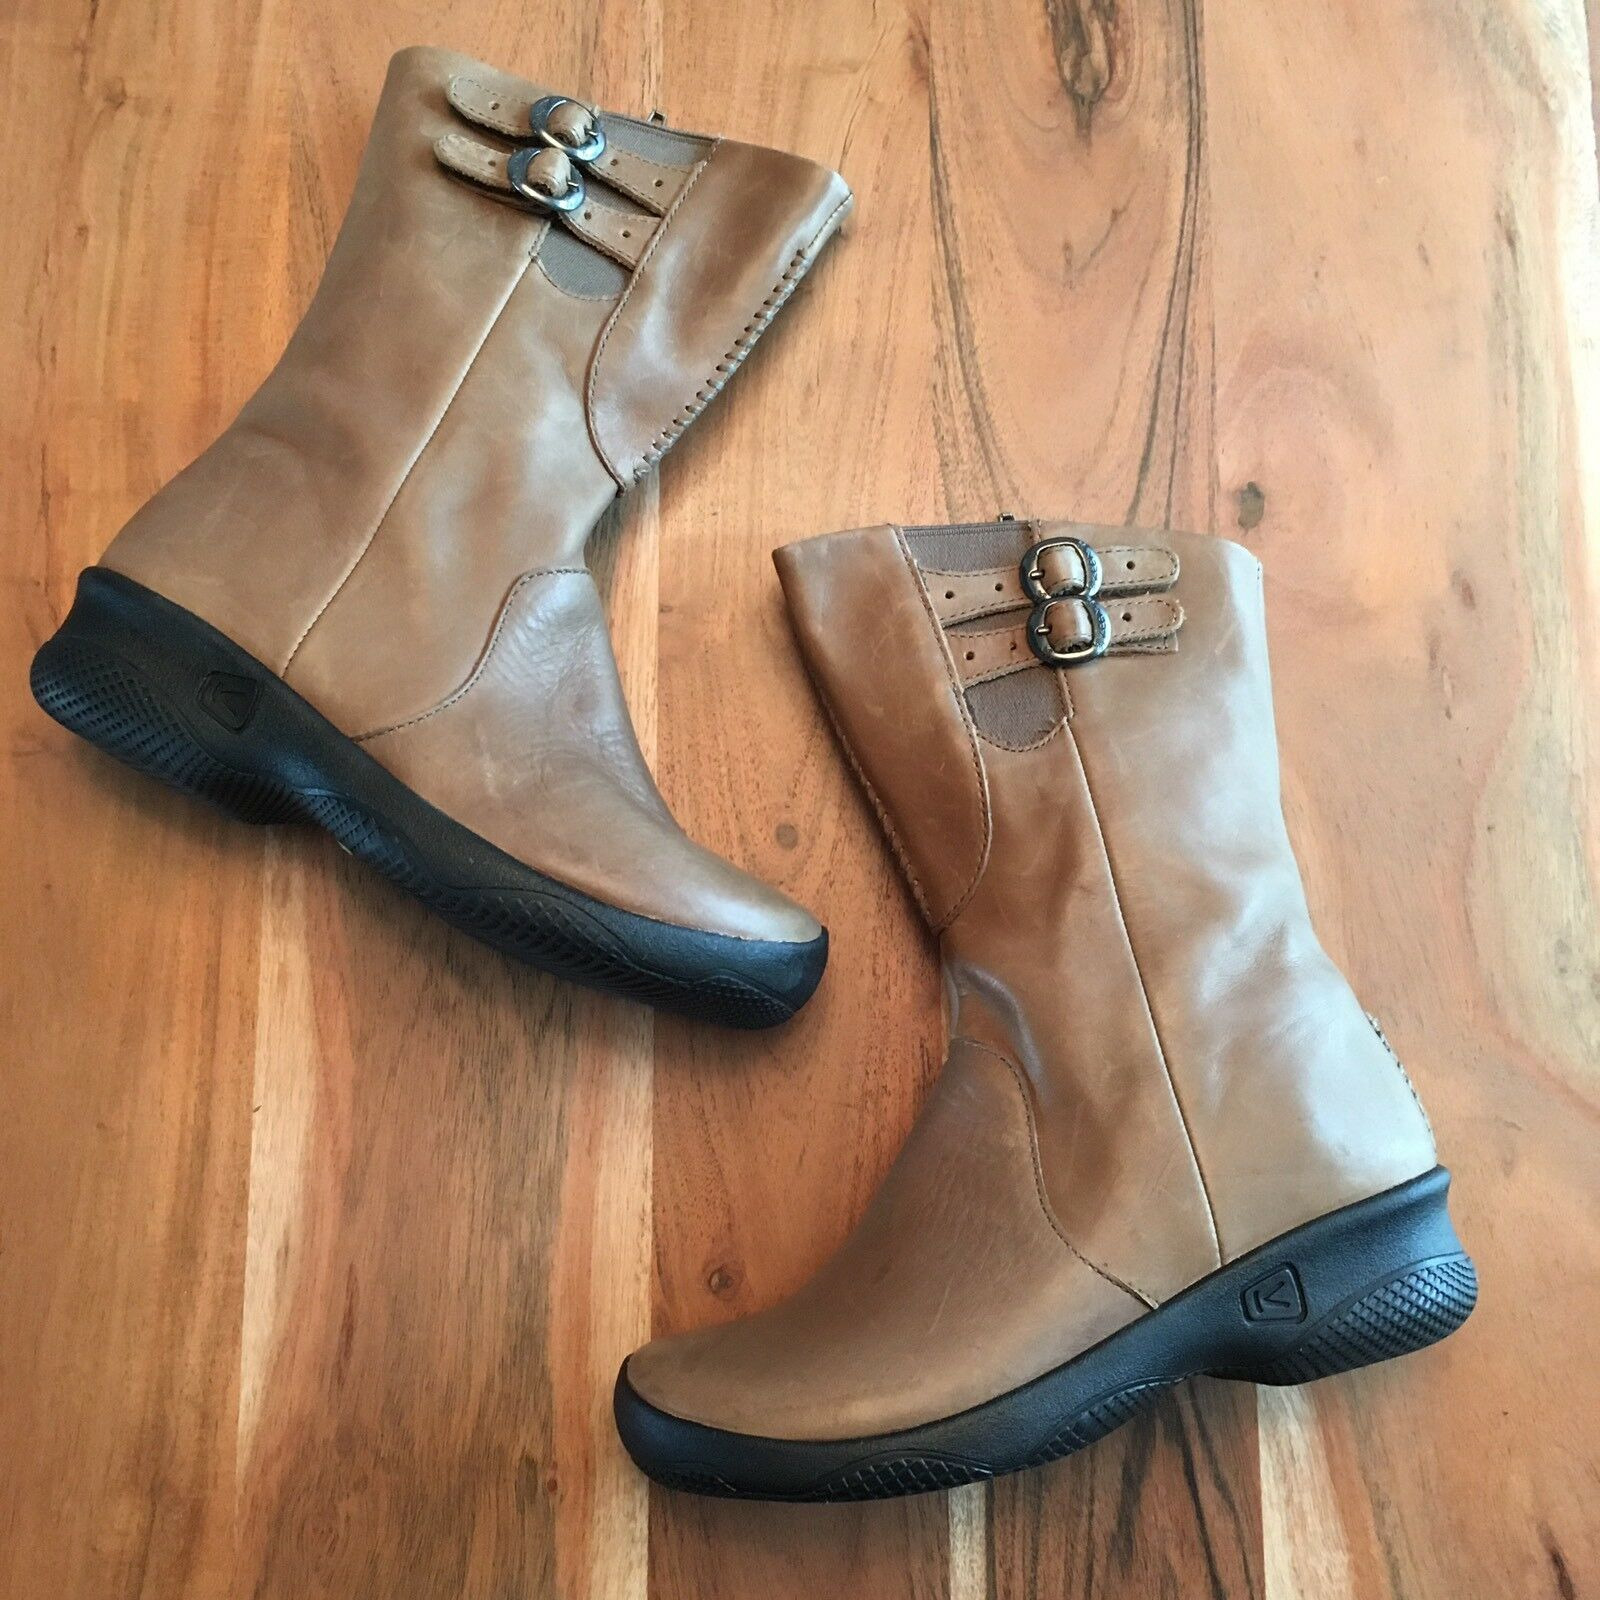 Keen Bern Baby Bern Mid-Cals Oatmeal Brown Leather Boots Women's sz 6